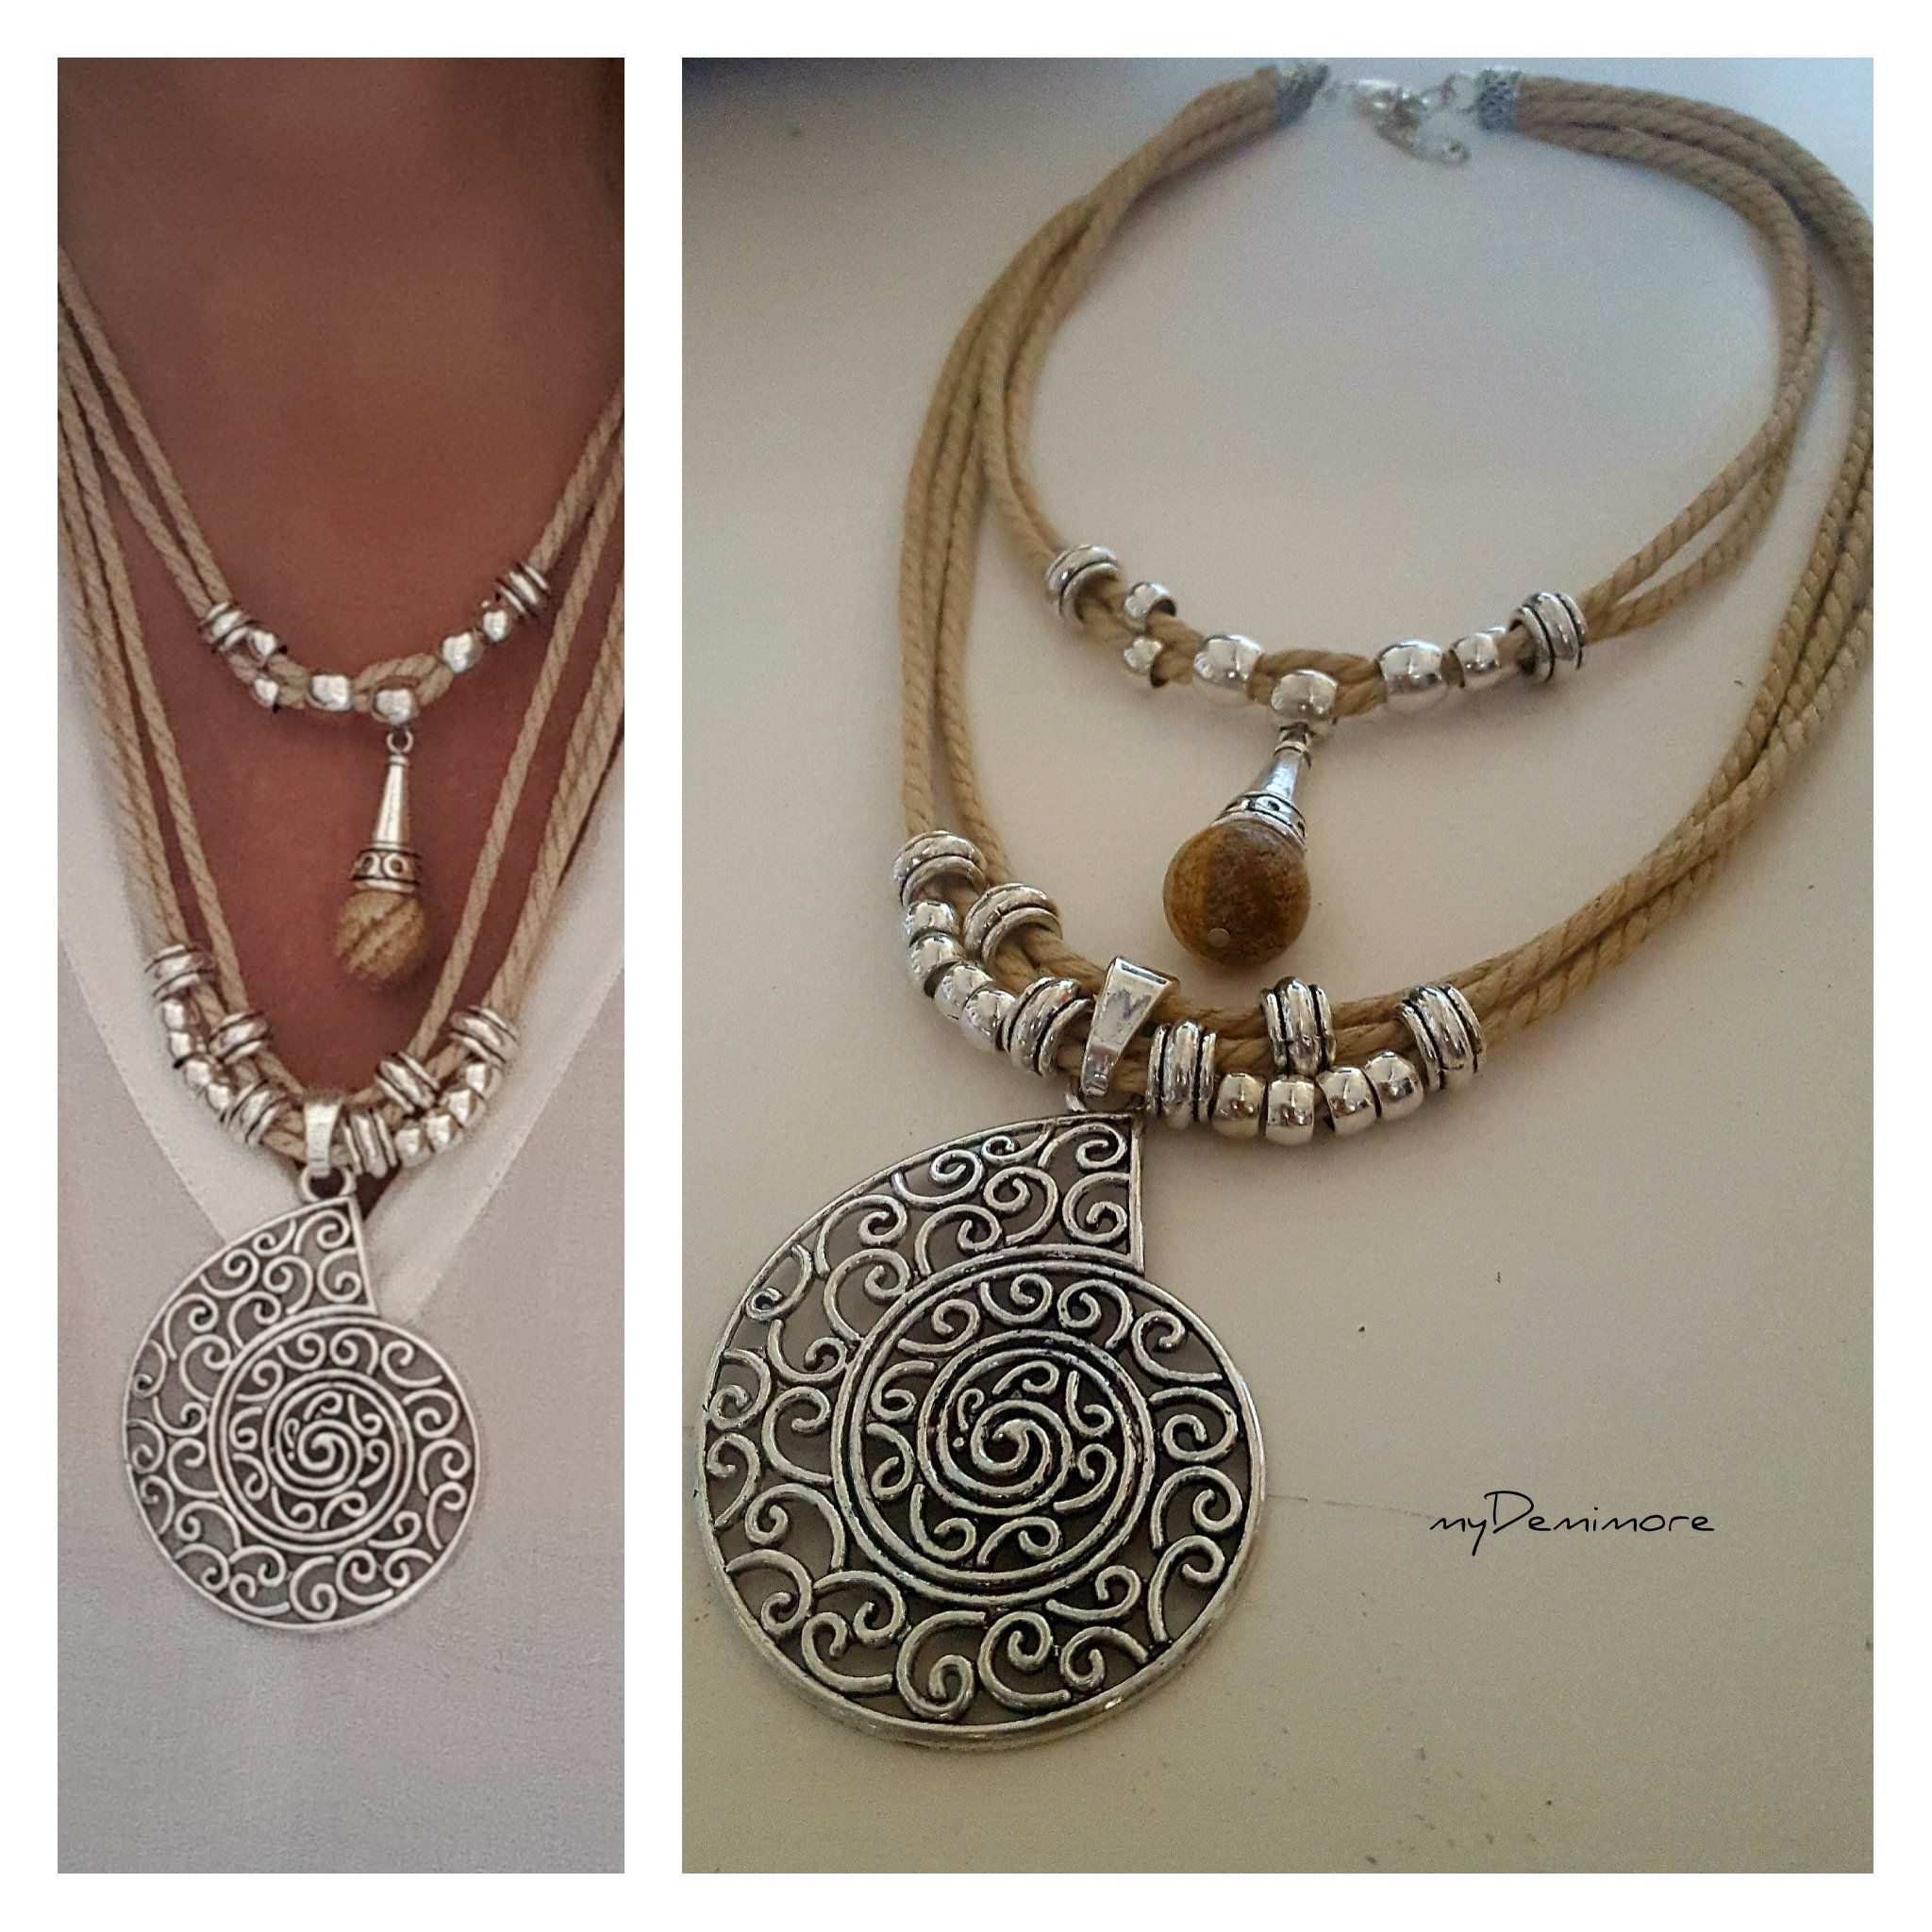 panacea a of shirt jewelry img white woman wearing pom front necklace tank tassel with turquoise in product